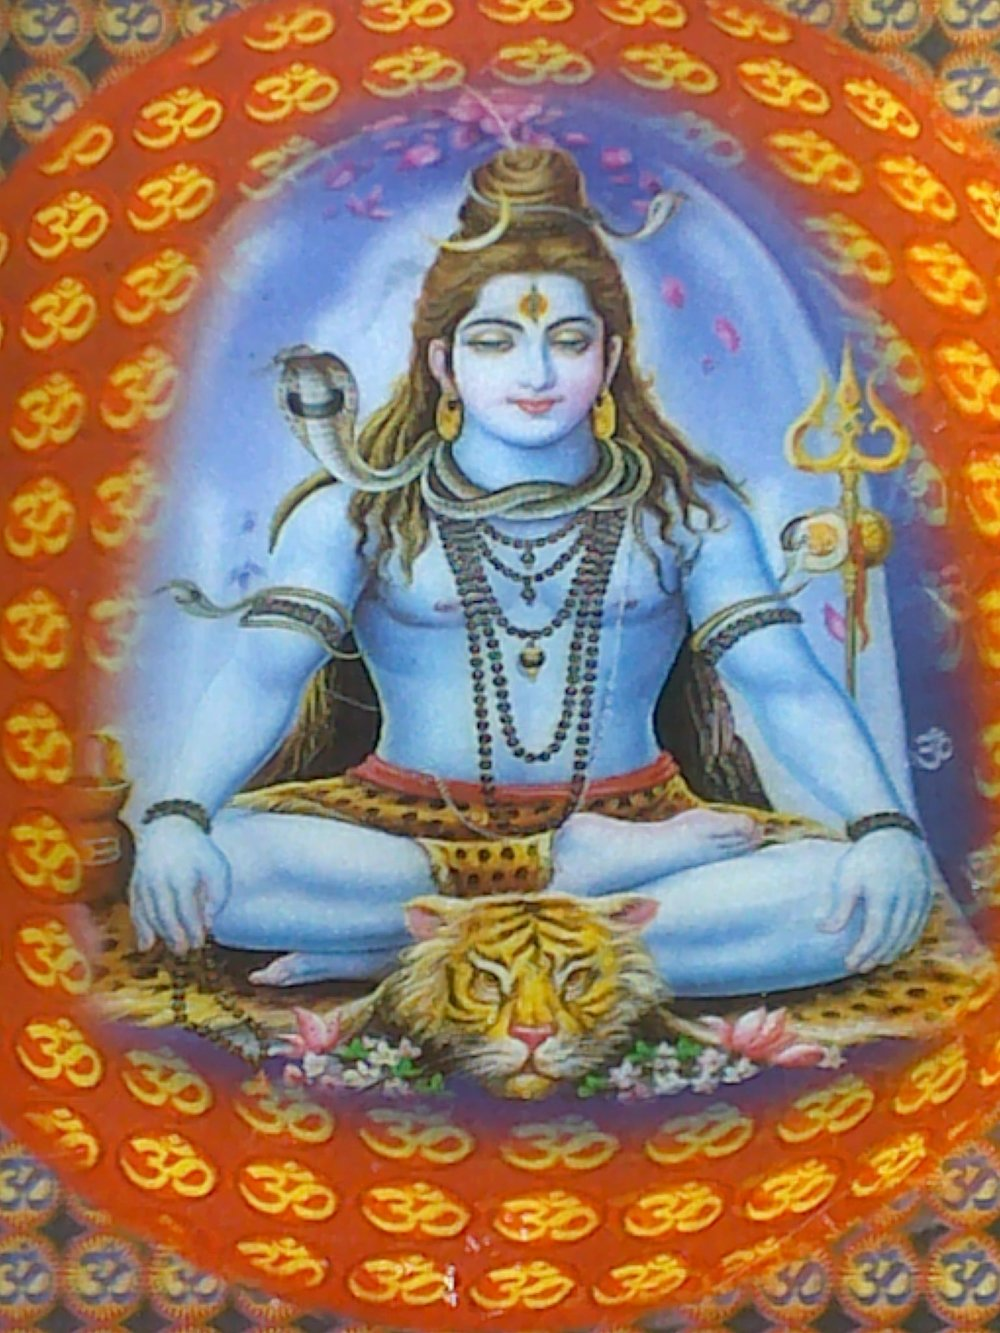 Picture of Lord Shiva in deep meditation.